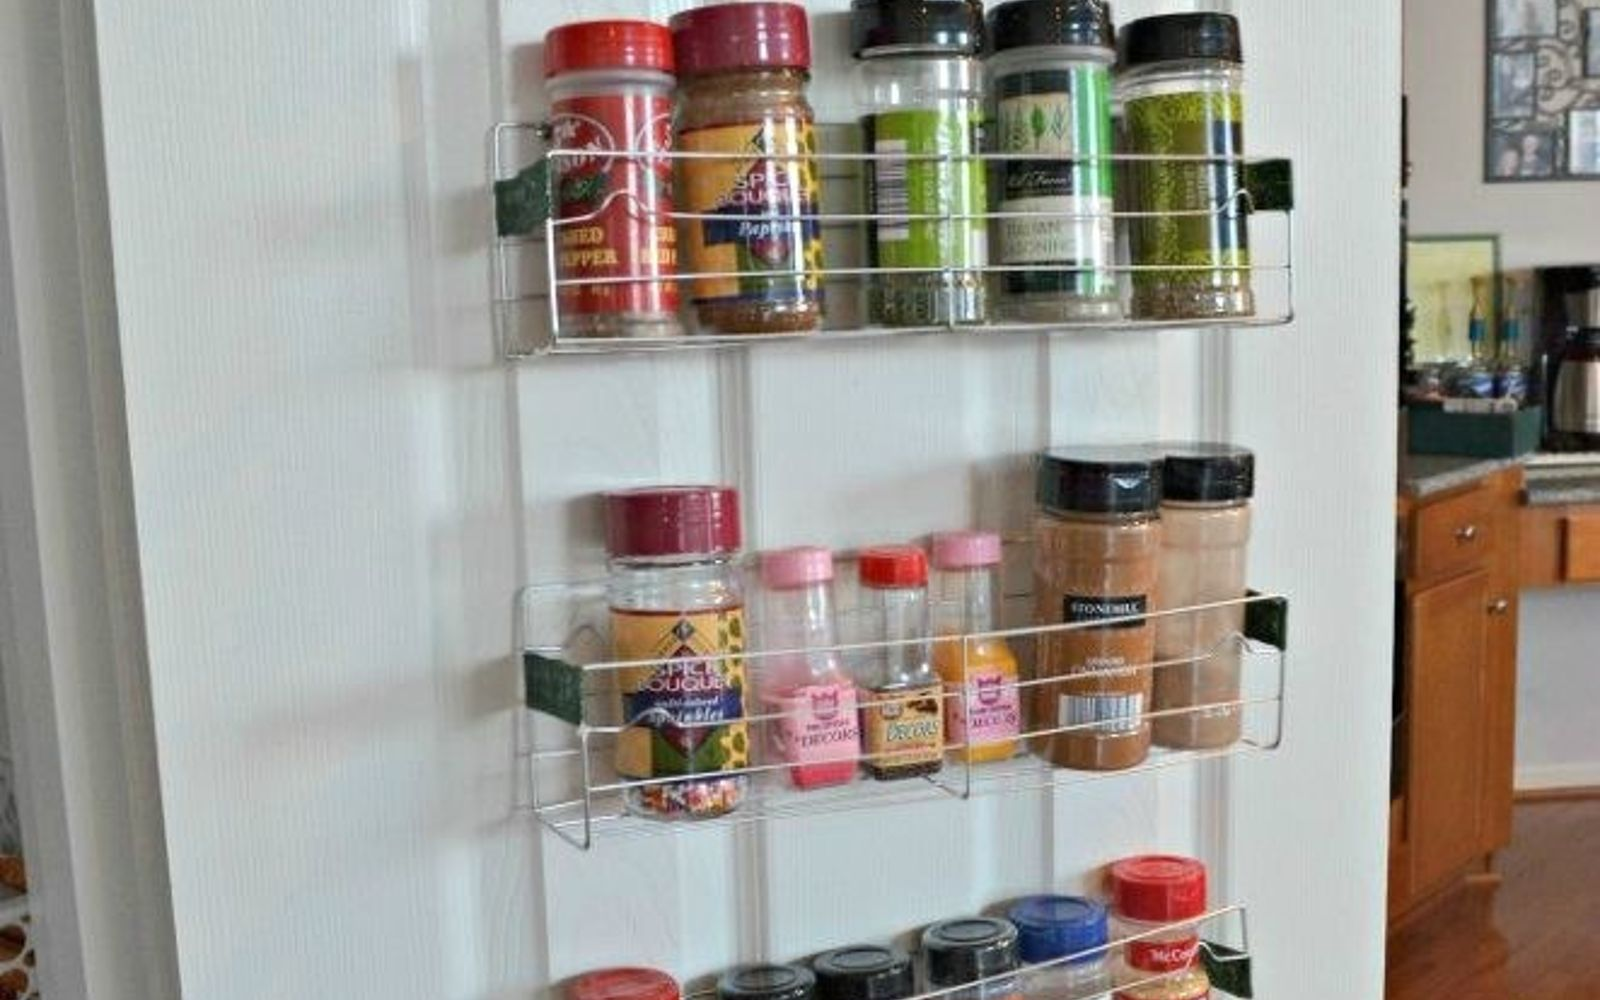 s 10 things pro organizers keep in their pantry all year long, closet, kitchen design, organizing, Wire Cooling Racks